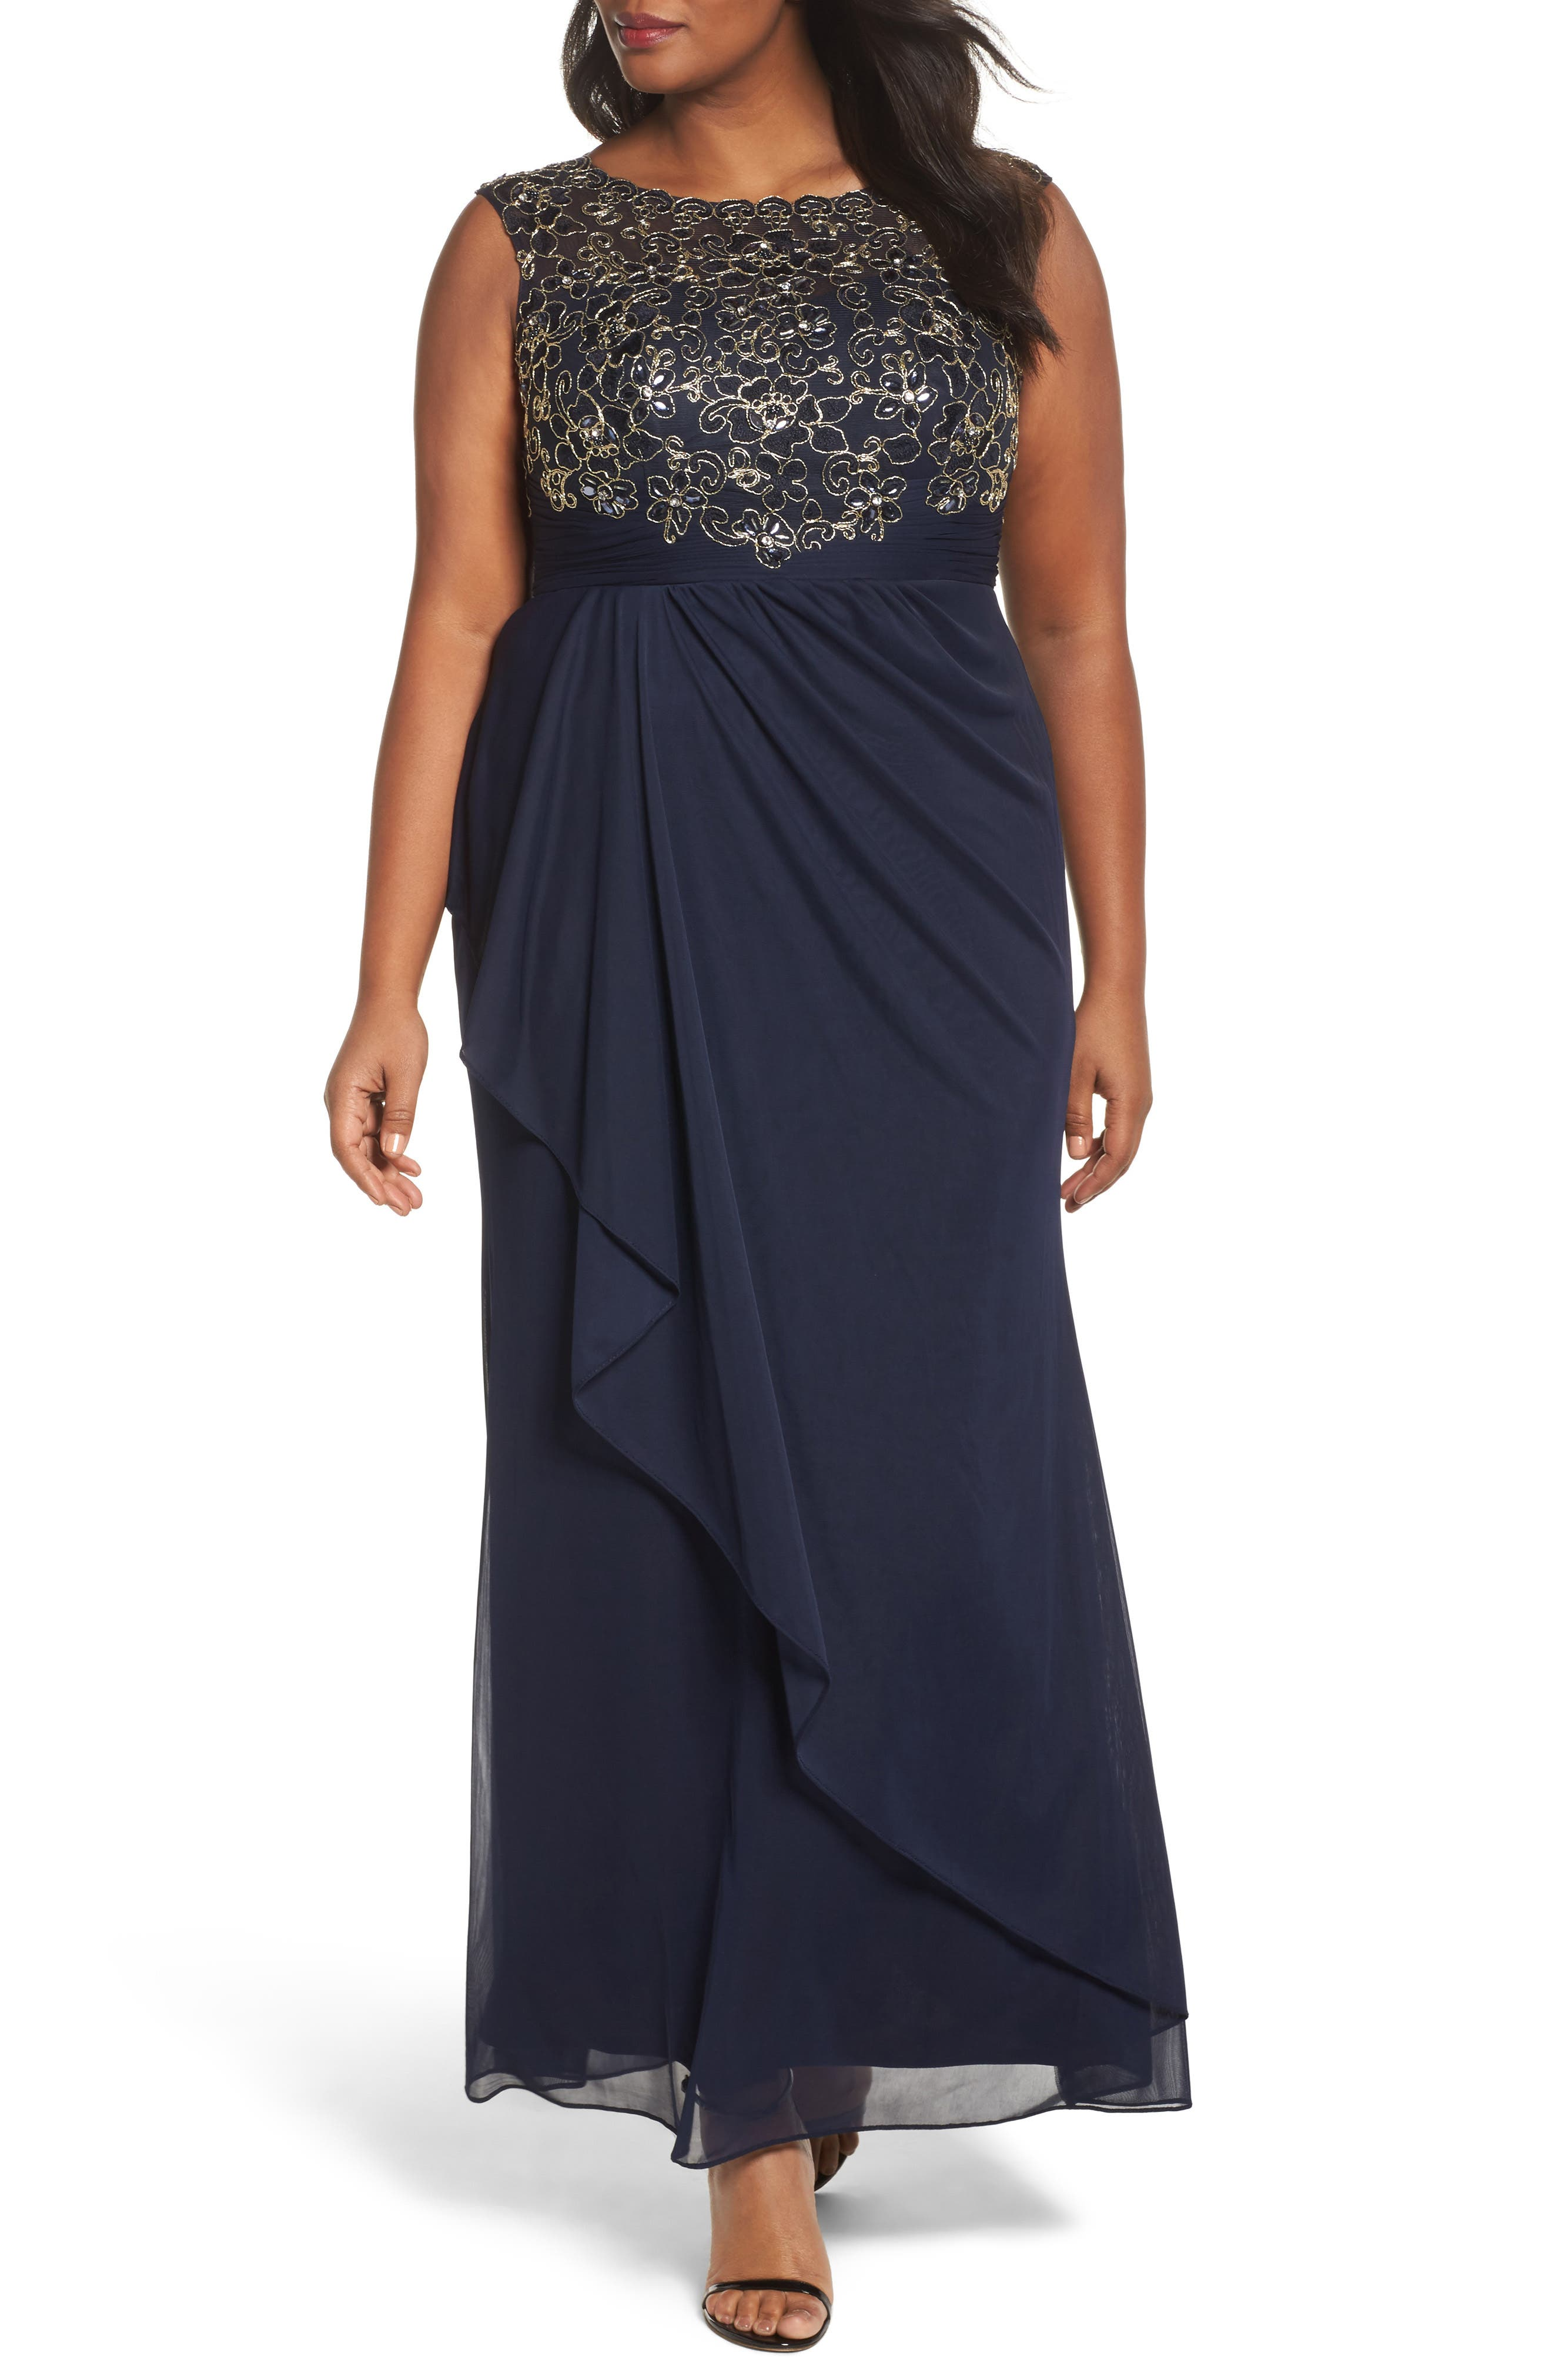 Main Image - Decode 1.8 Embroidered Cap Sleeve Gown (Plus Size)